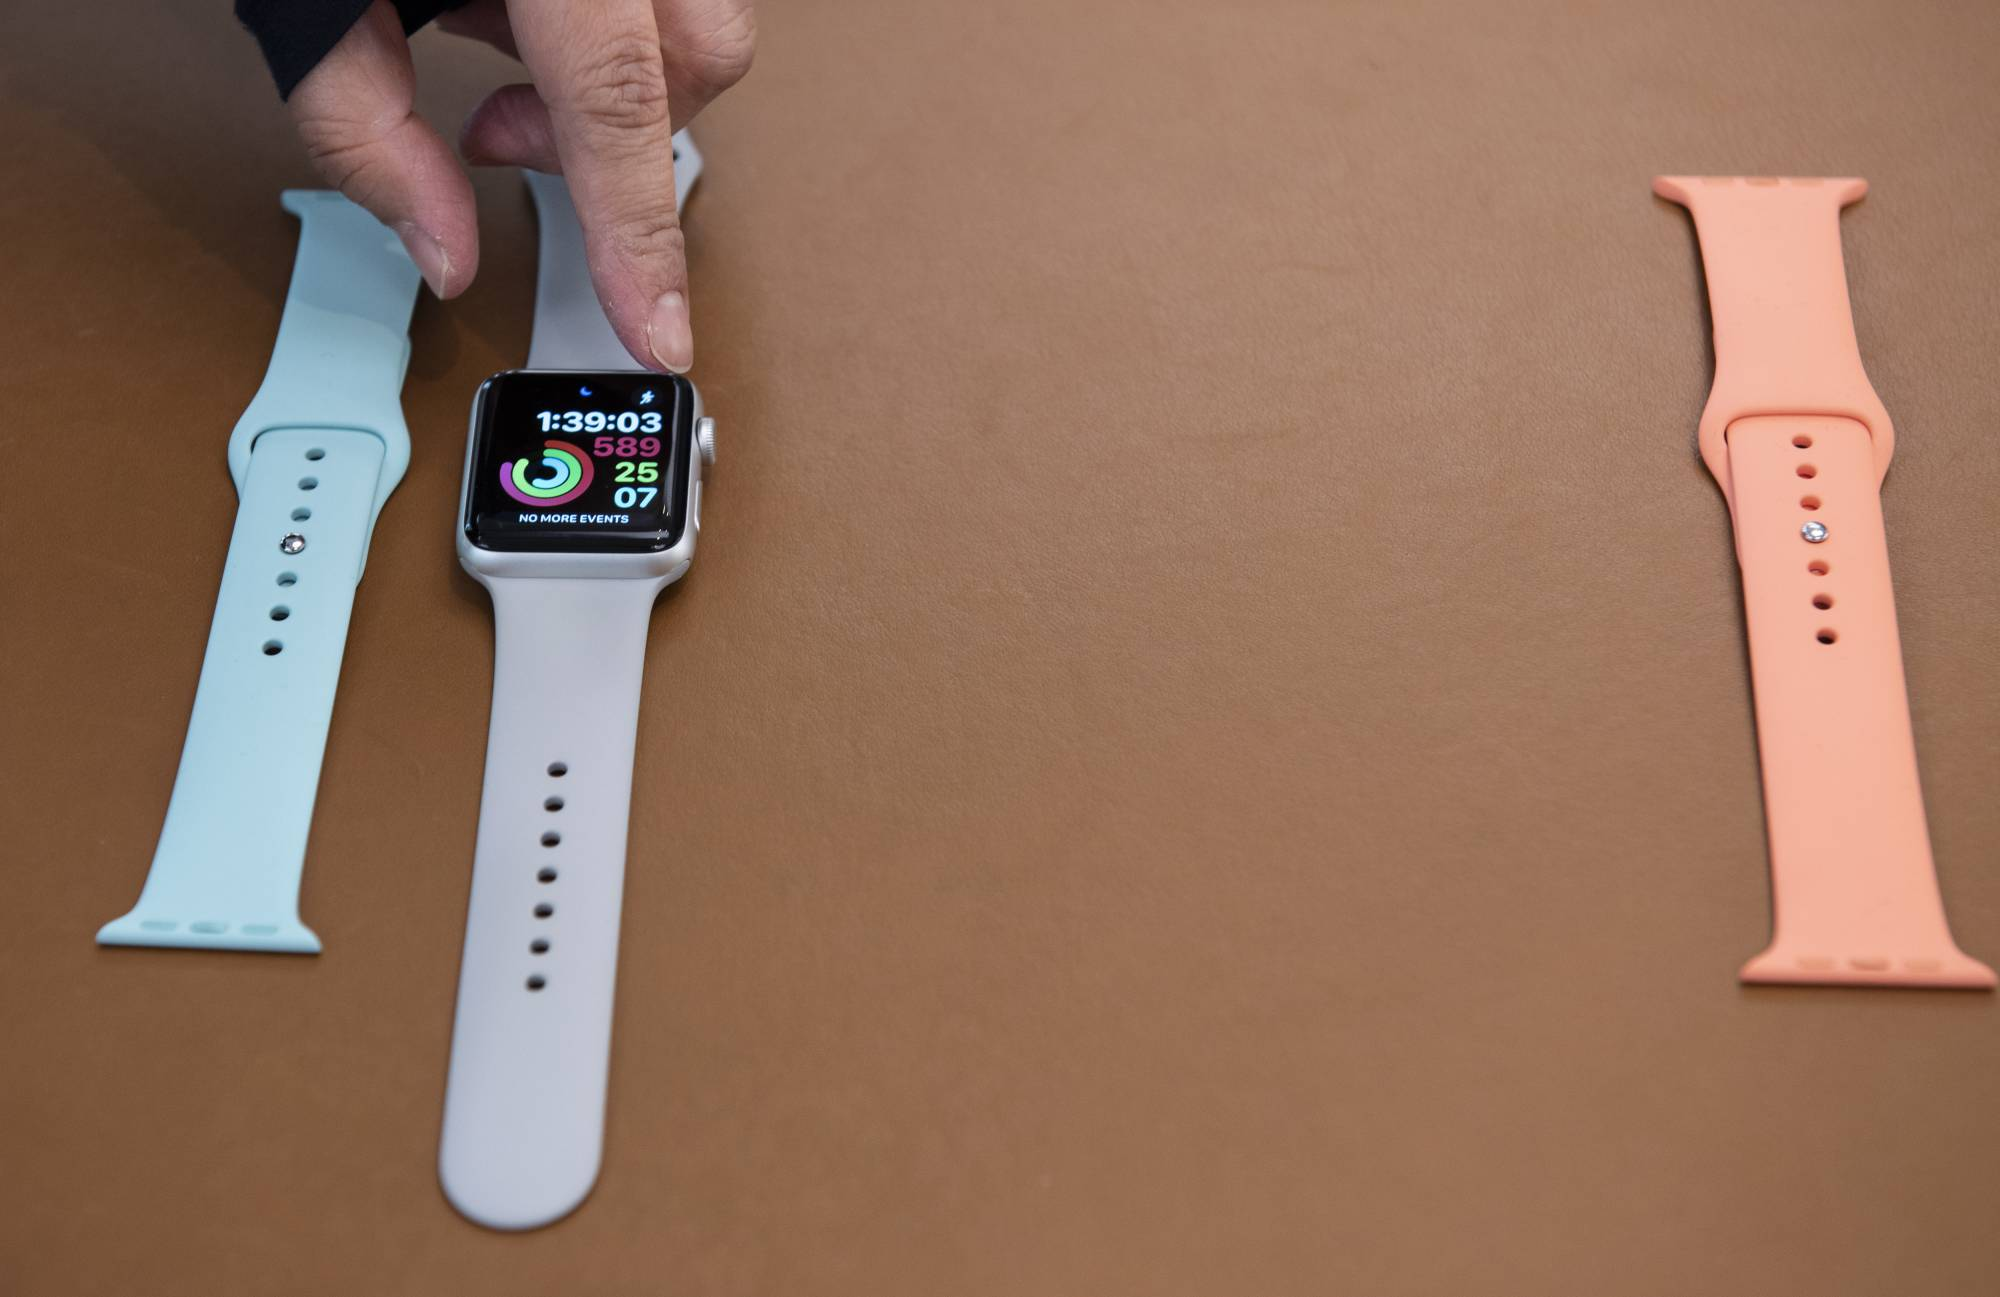 Apple employee demonstrates different Apple watch functions and